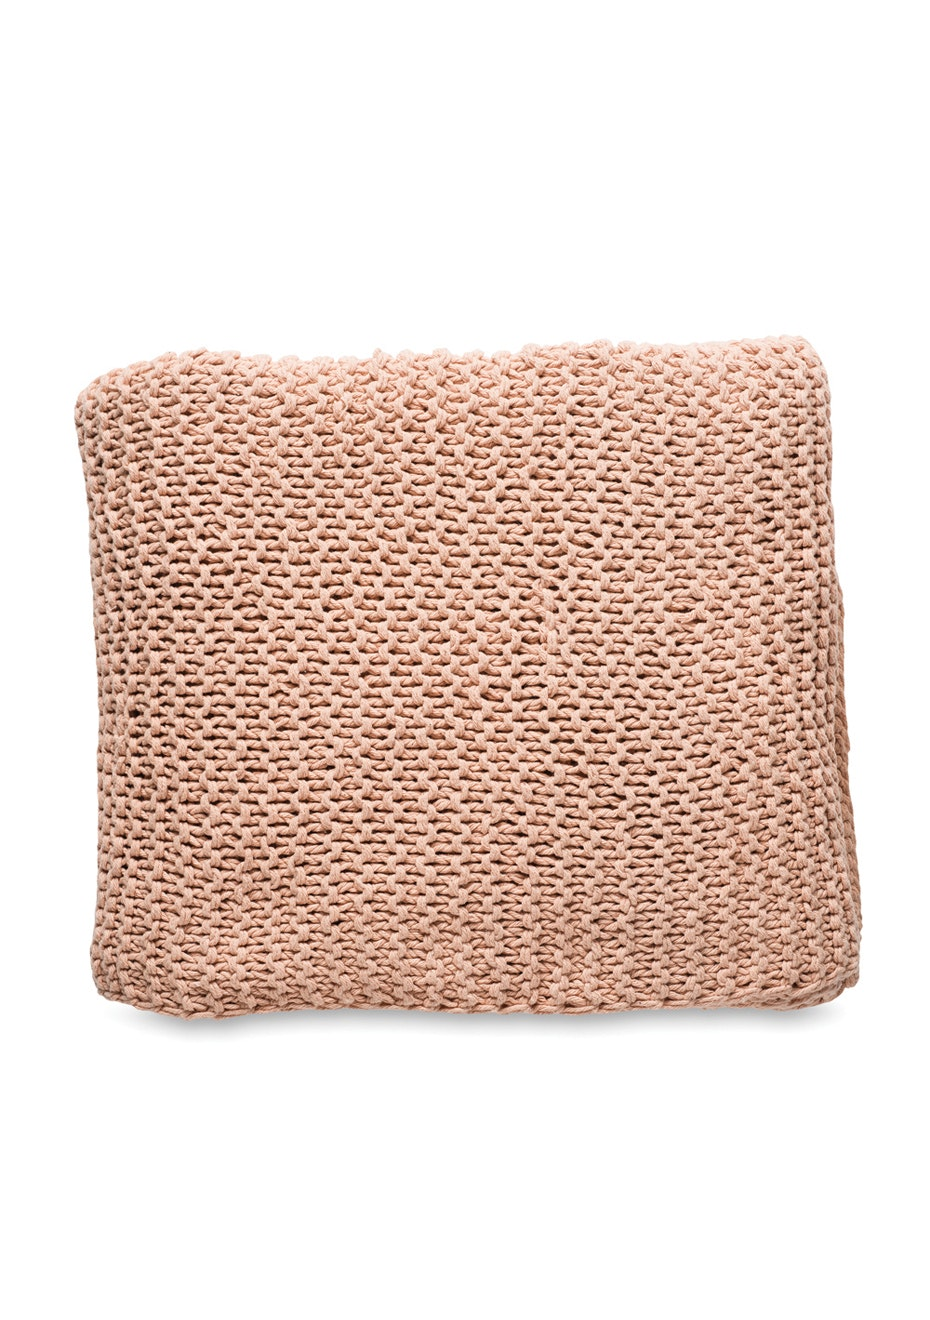 Citta - Purl Stitch Cotton Throw - Cameo